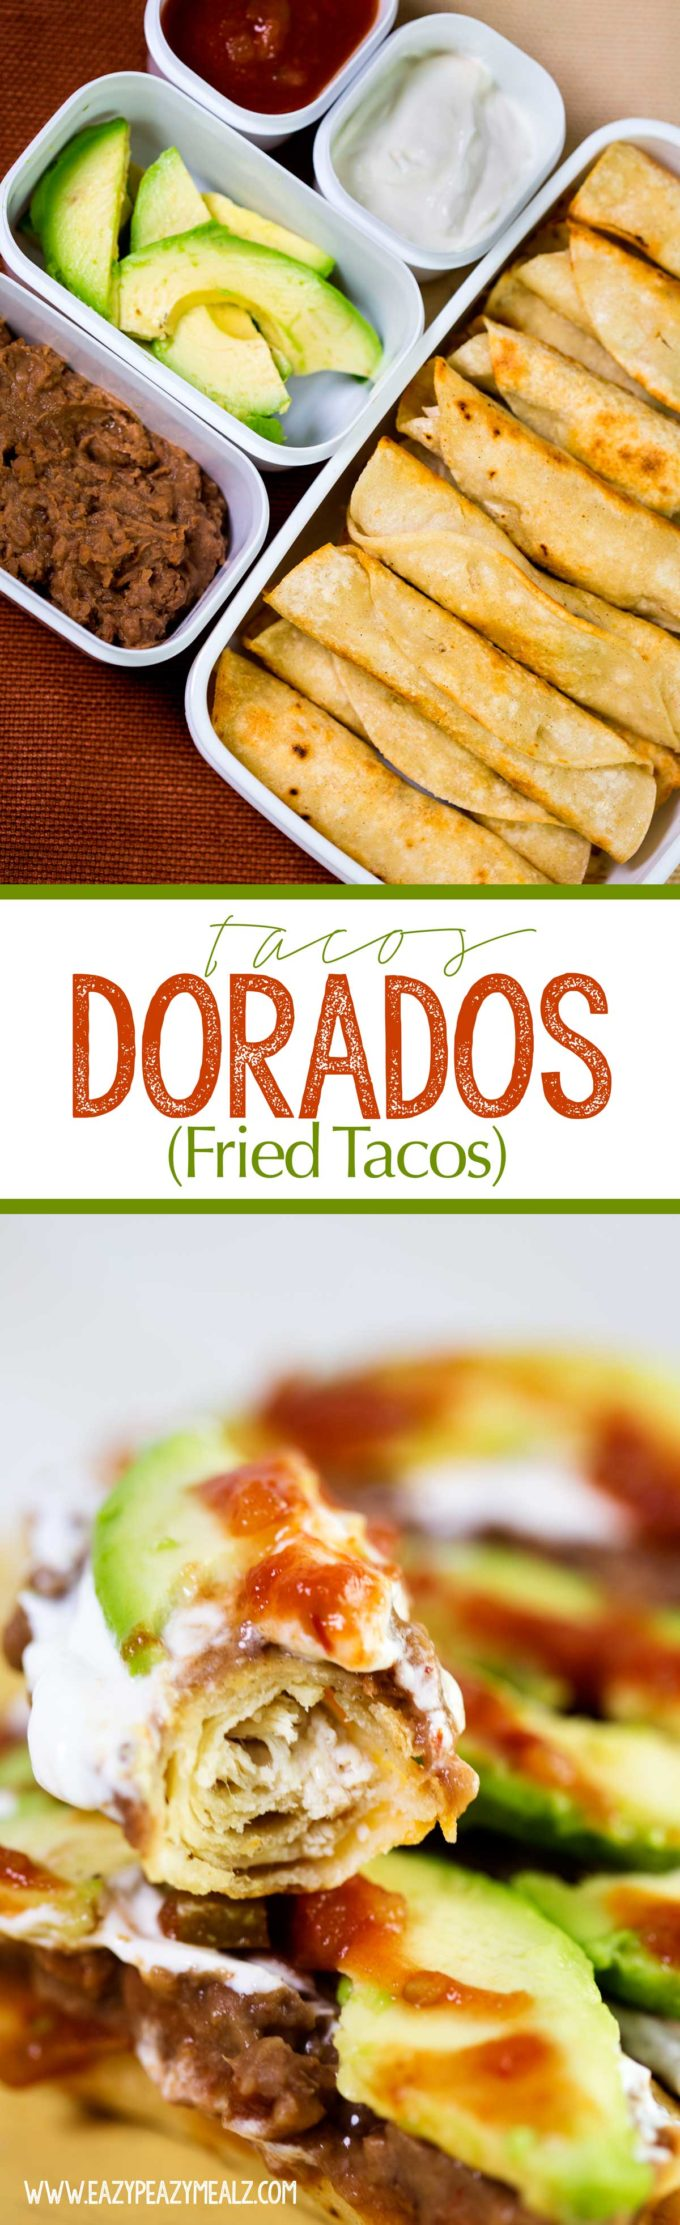 Tacos Dorados AKA fried tacos are stuffed with tender chicken and cheese and topped with all your favorites. A great lunch, dinner, or game day good.